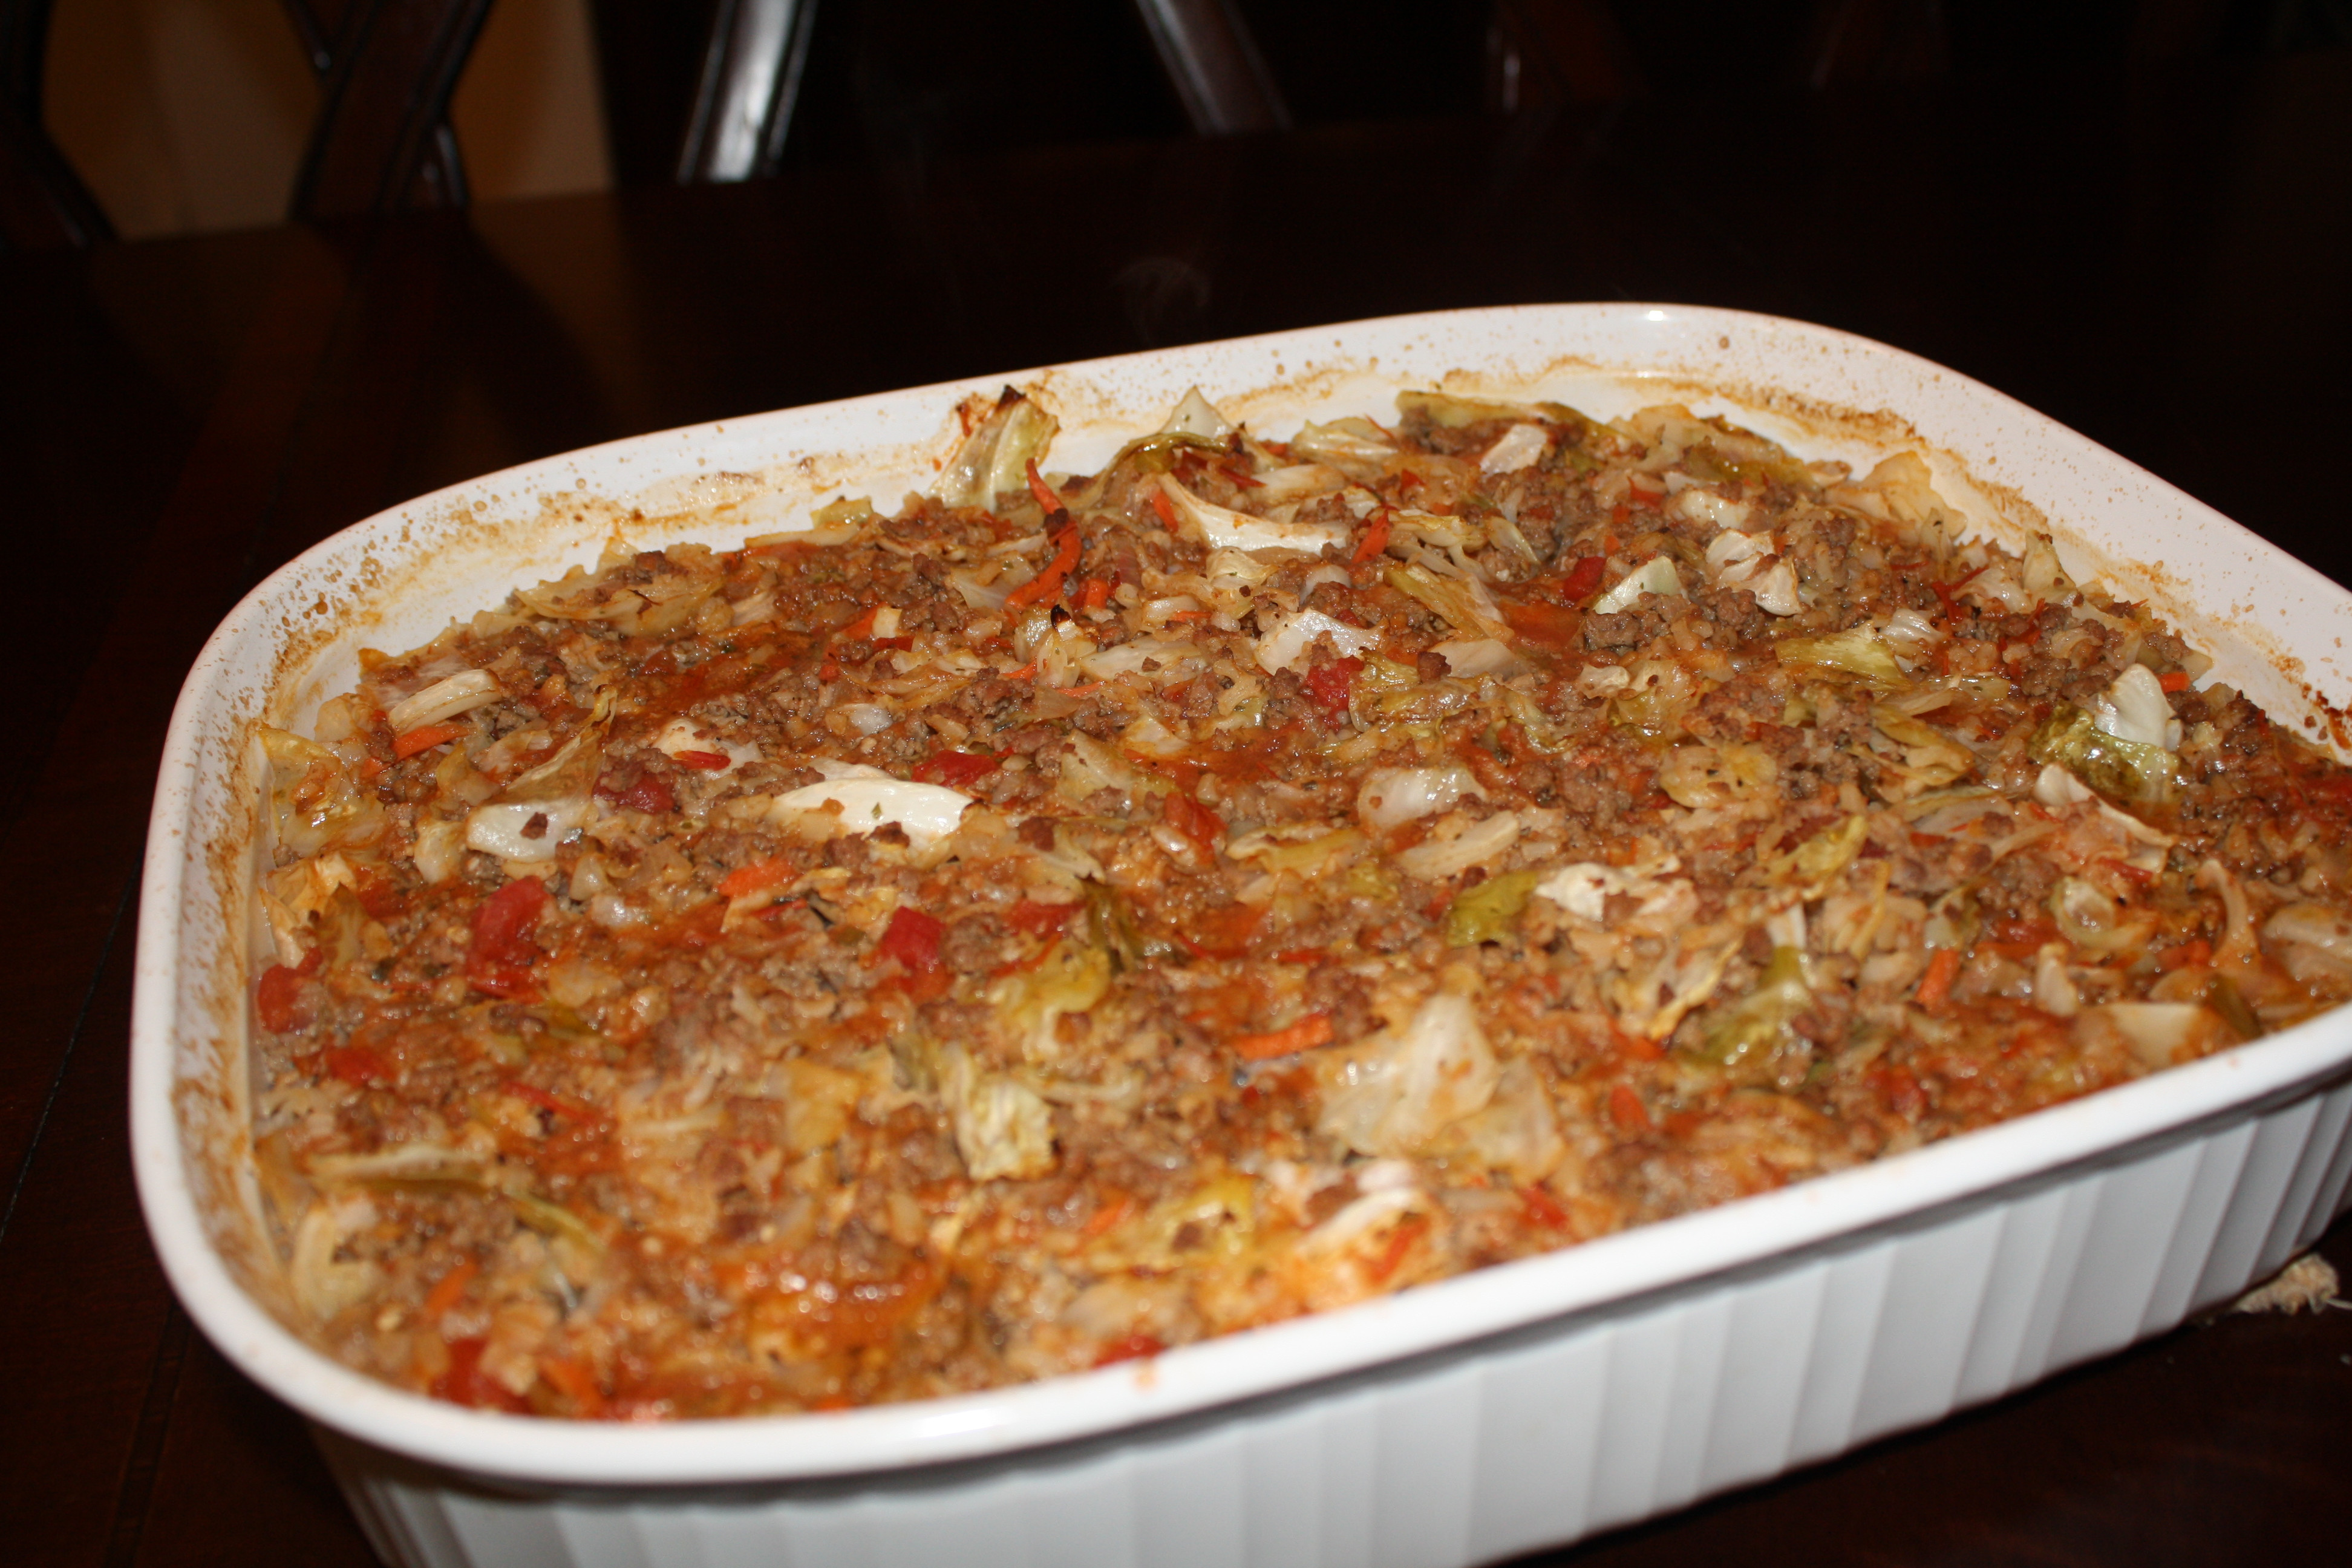 Stuffed Cabbage Casserole  Monday Menu Stuffed Cabbage Casserole With Just a Bit